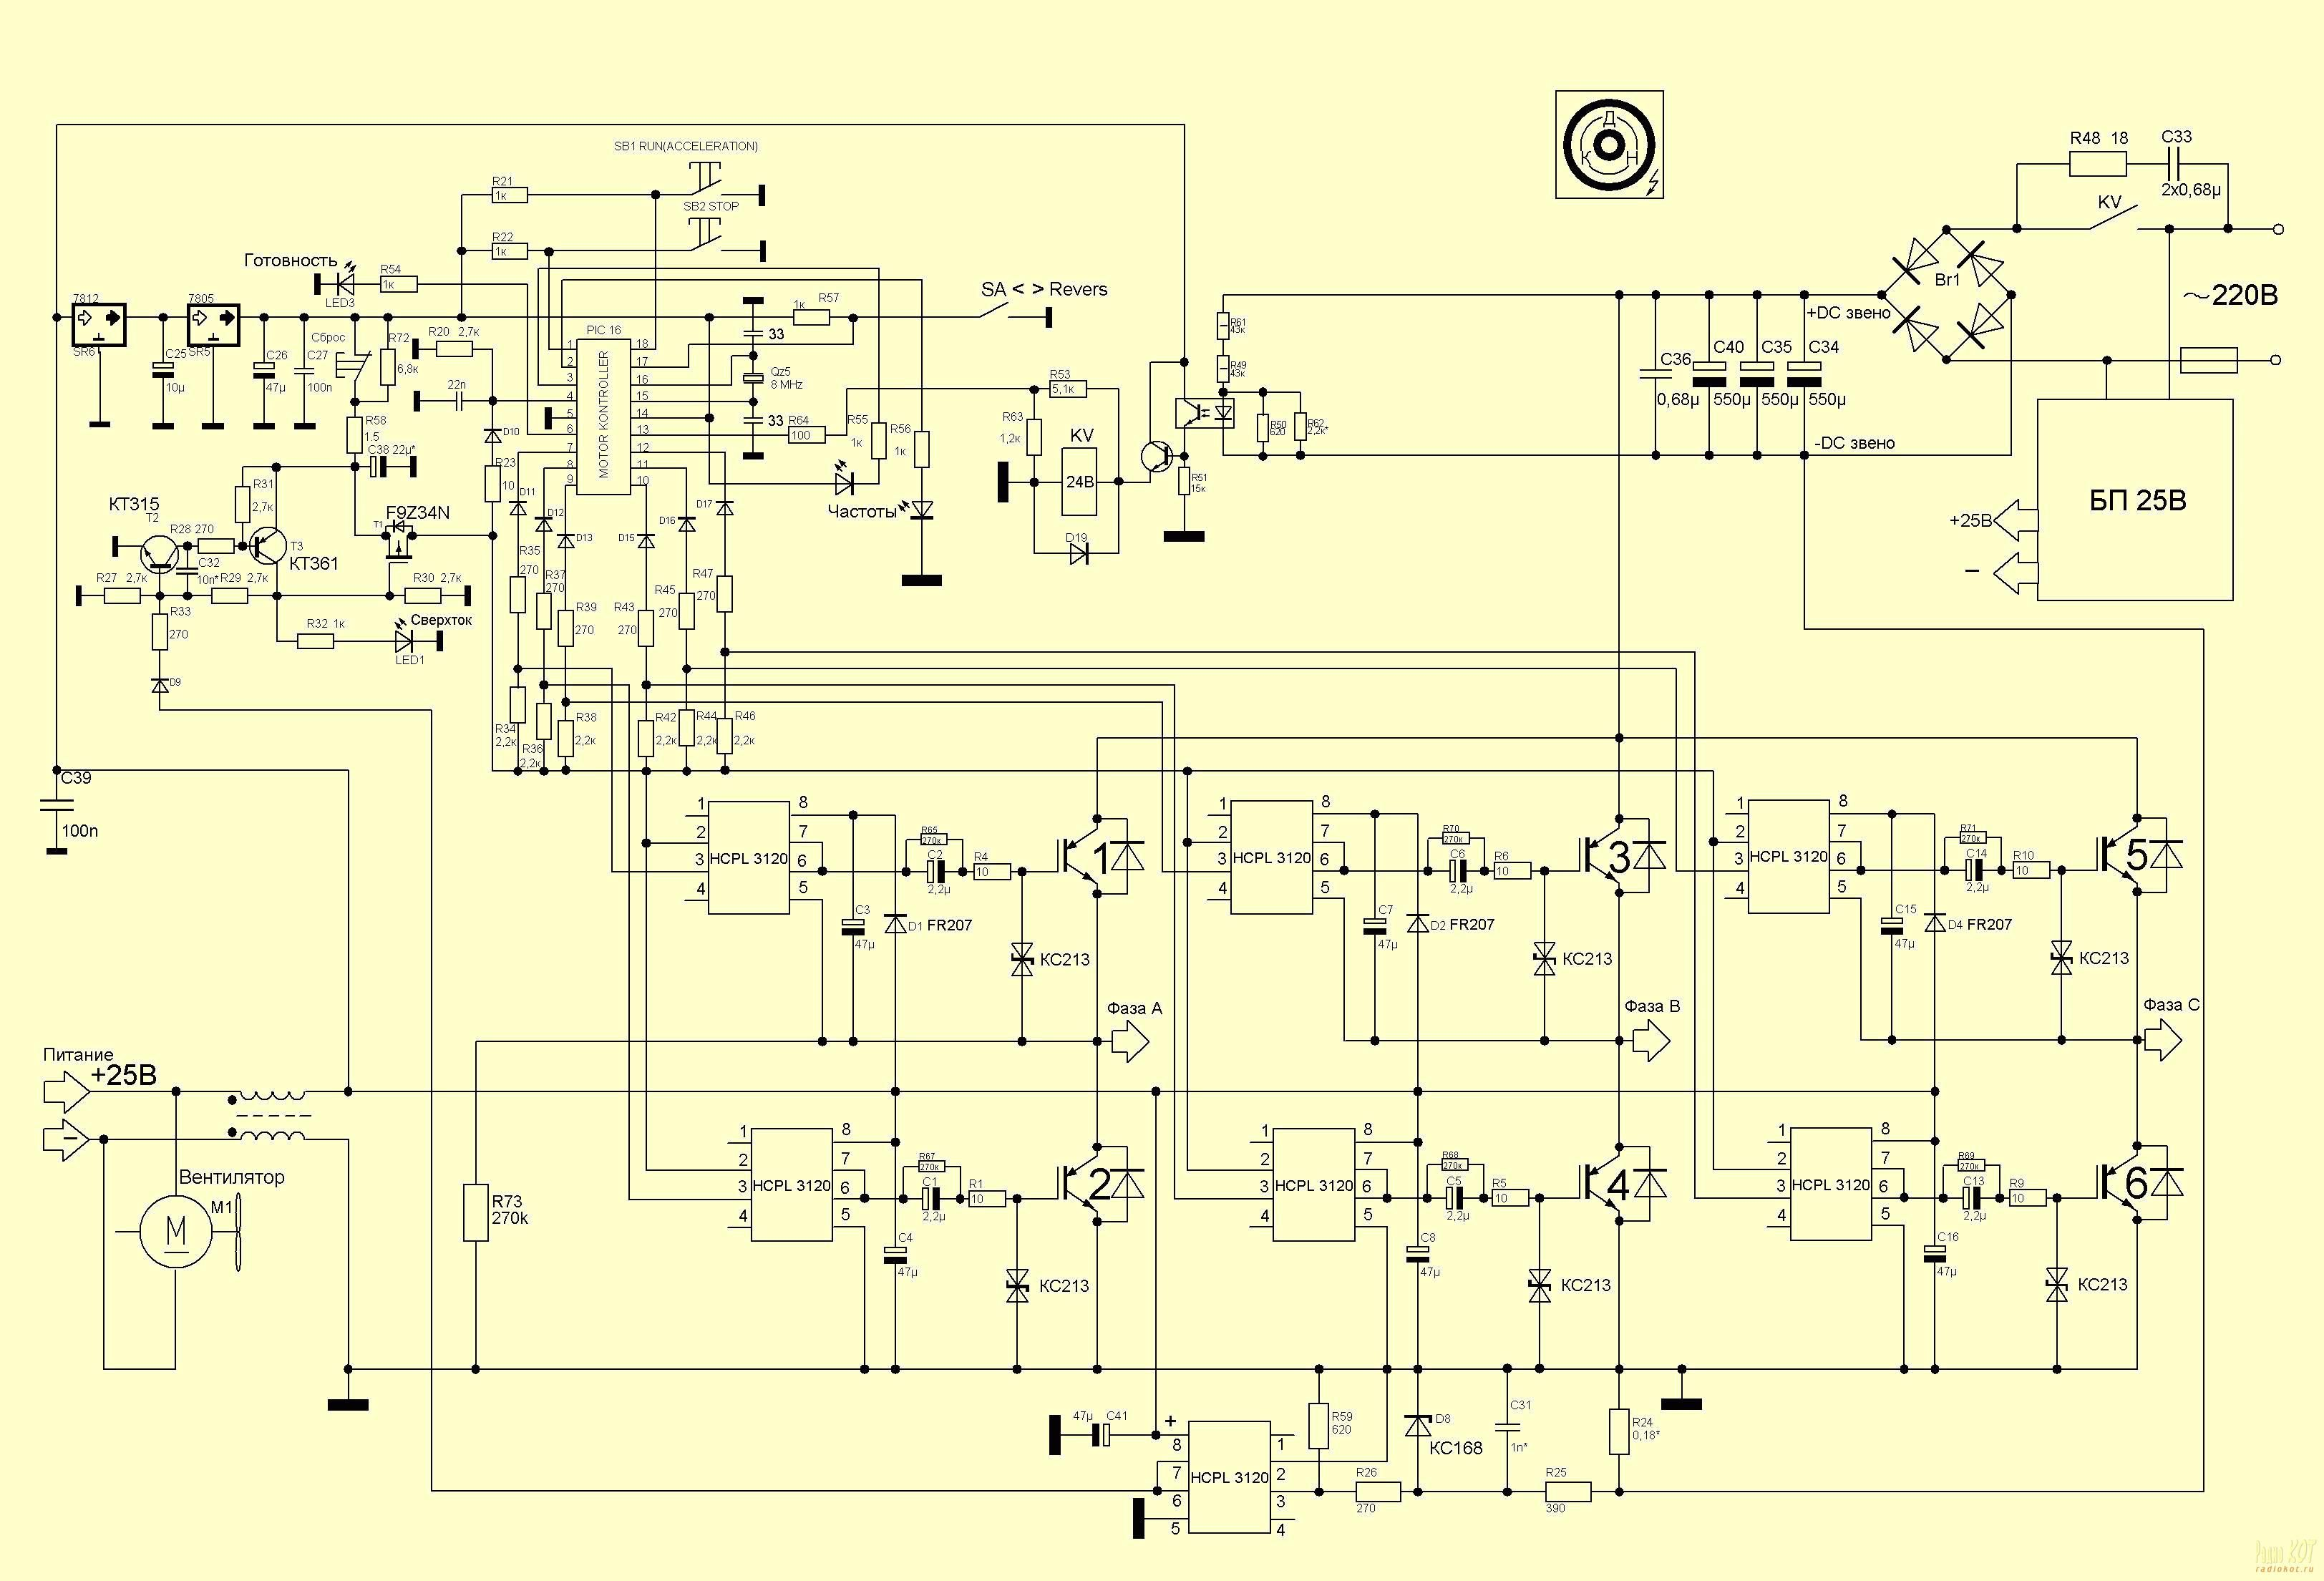 Ir2161 Smps Circuit Ir2153 Alternative Schematic Lead Acid Battery Charger Uc3845 12v 6v 50a Switchmode